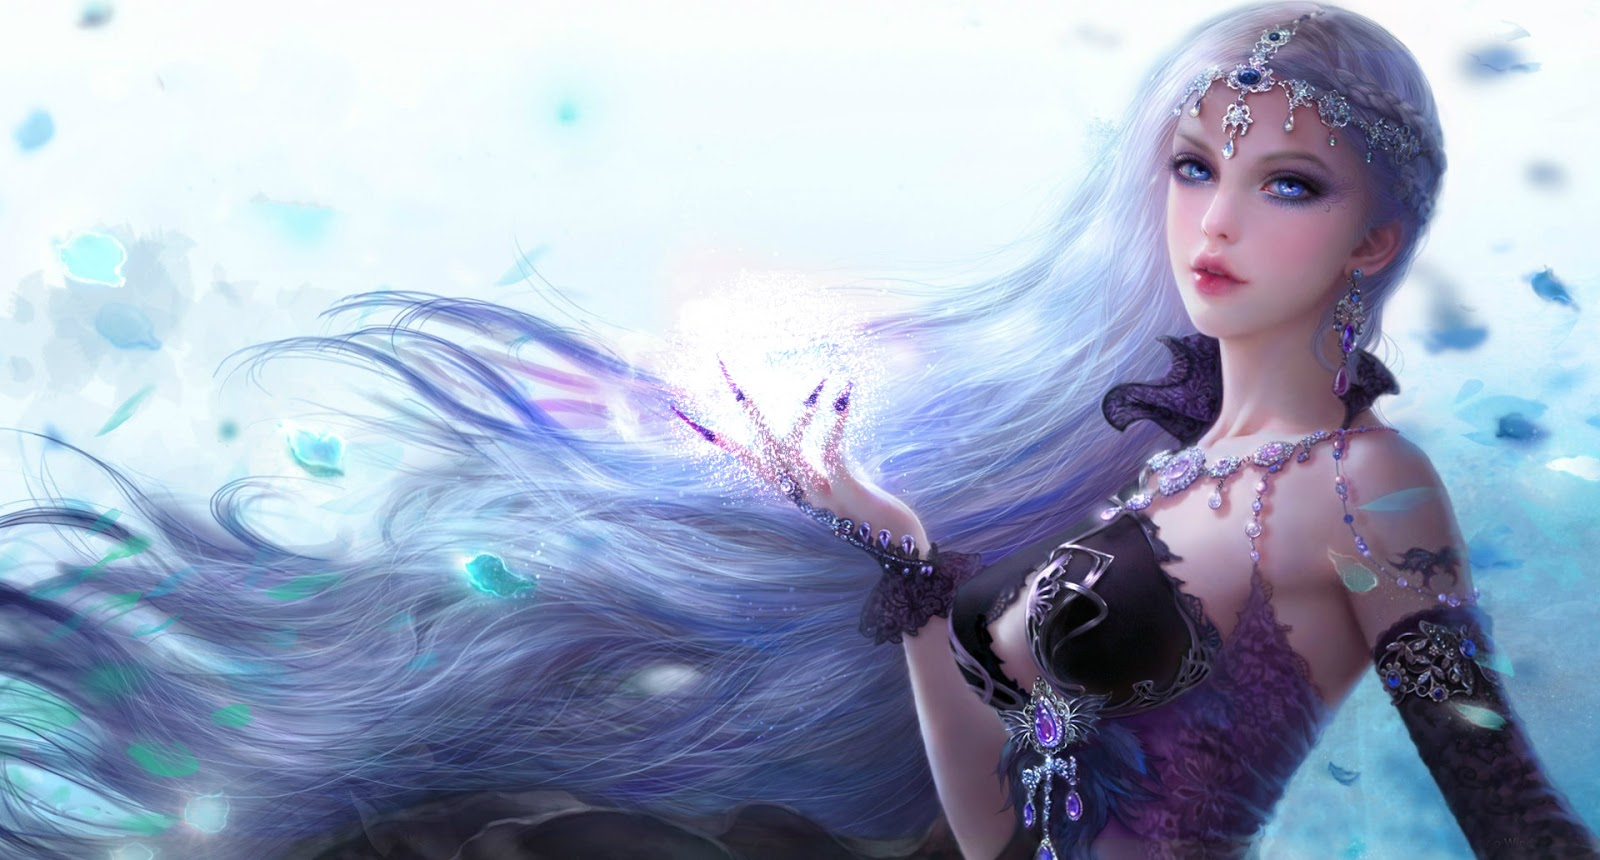 Fantasy Princess Fantasy Girl Free Animated Wallpaper.